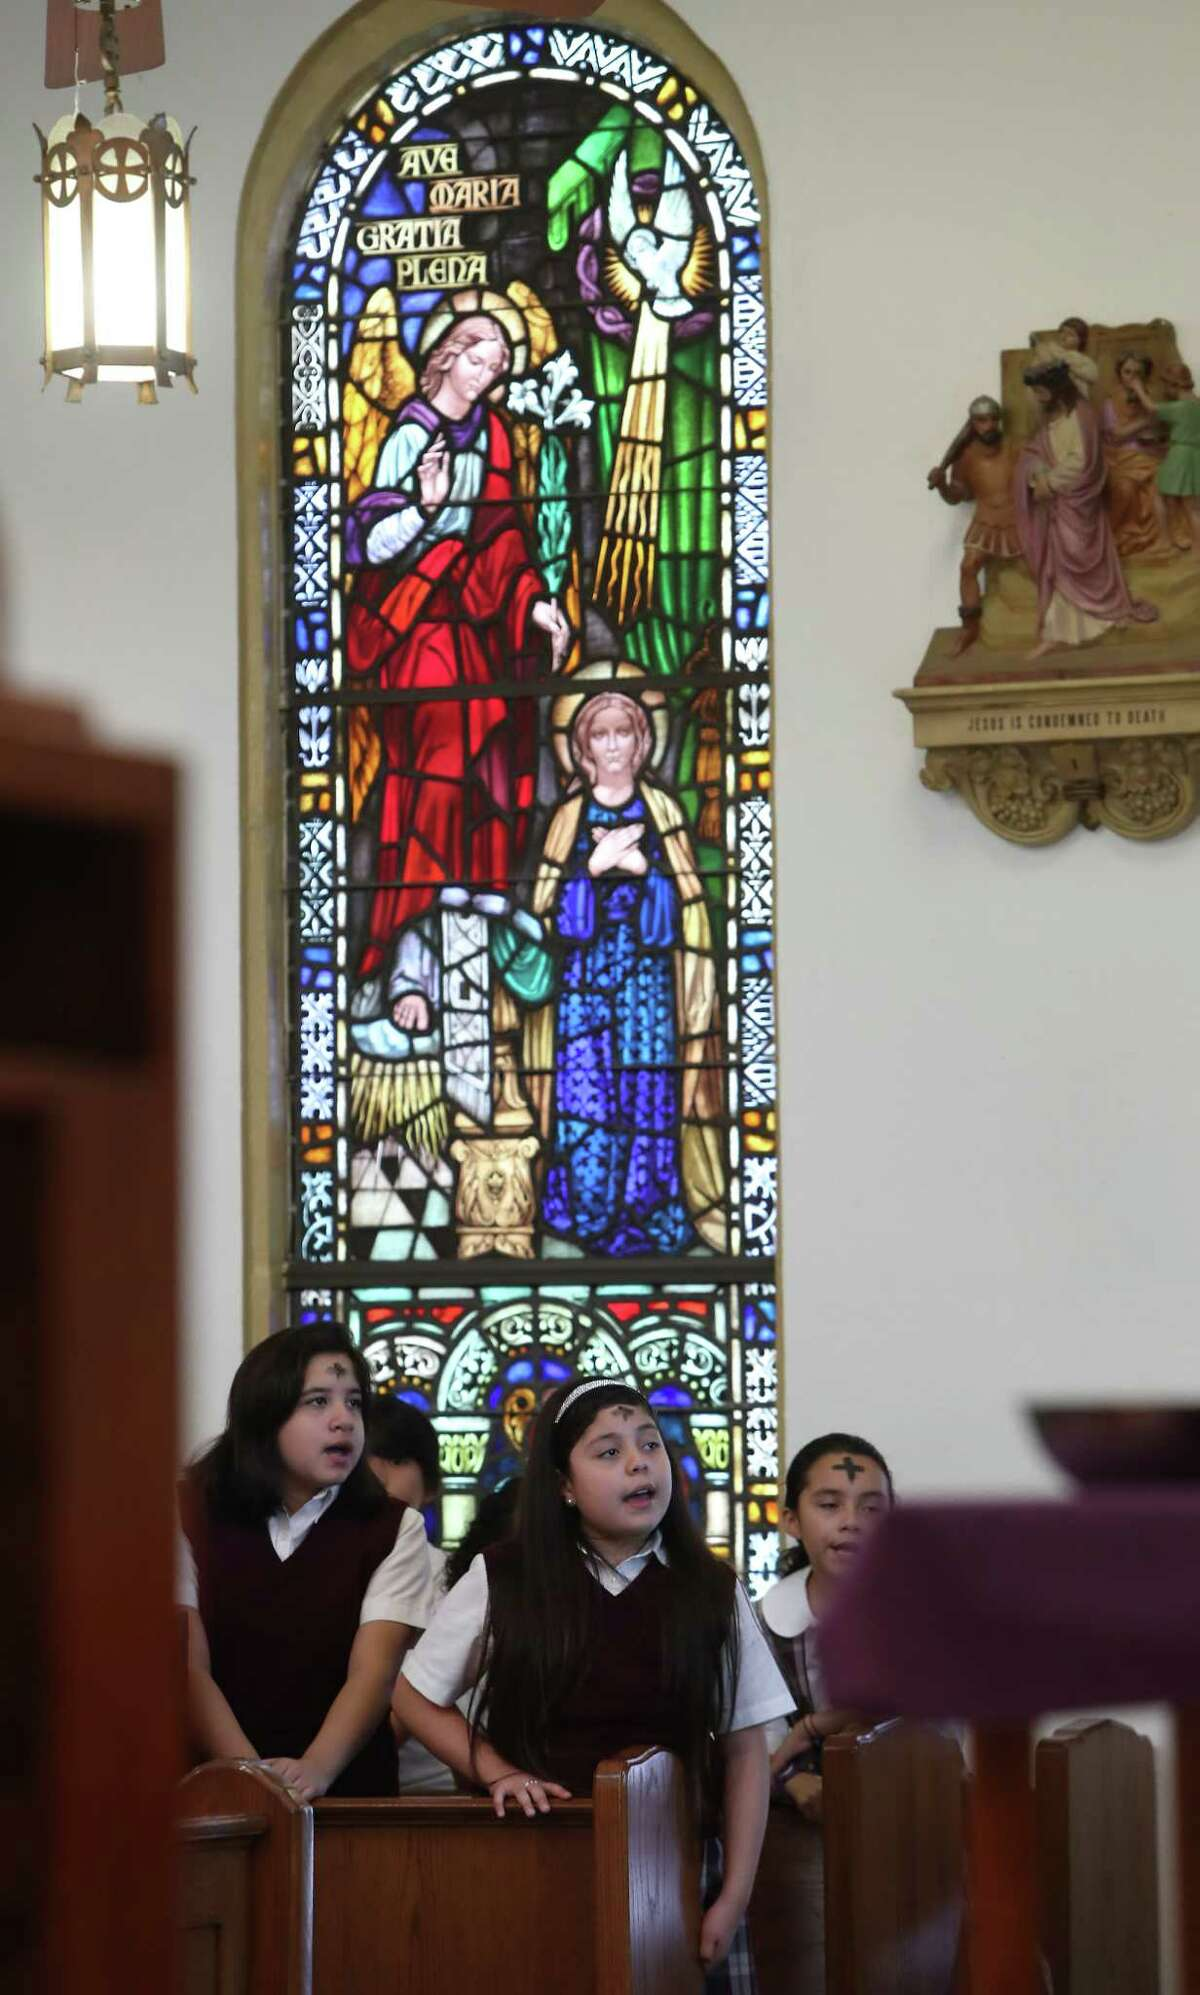 """Our Lady of Guadalupe school sing after receiving ashes during Ash Wednesday Mass, Wednesday, March 1, 2017, in Houston. Catholics mark the beginning of Lent with Ash Wednesday. Throughout the day, thousands will attend Masses and Services during which they will receive ashes across their foreheads in a ceremony known as the ?'imposition?"""" of ashes. The ashes symbolize penance and are a reminder of our mortality."""